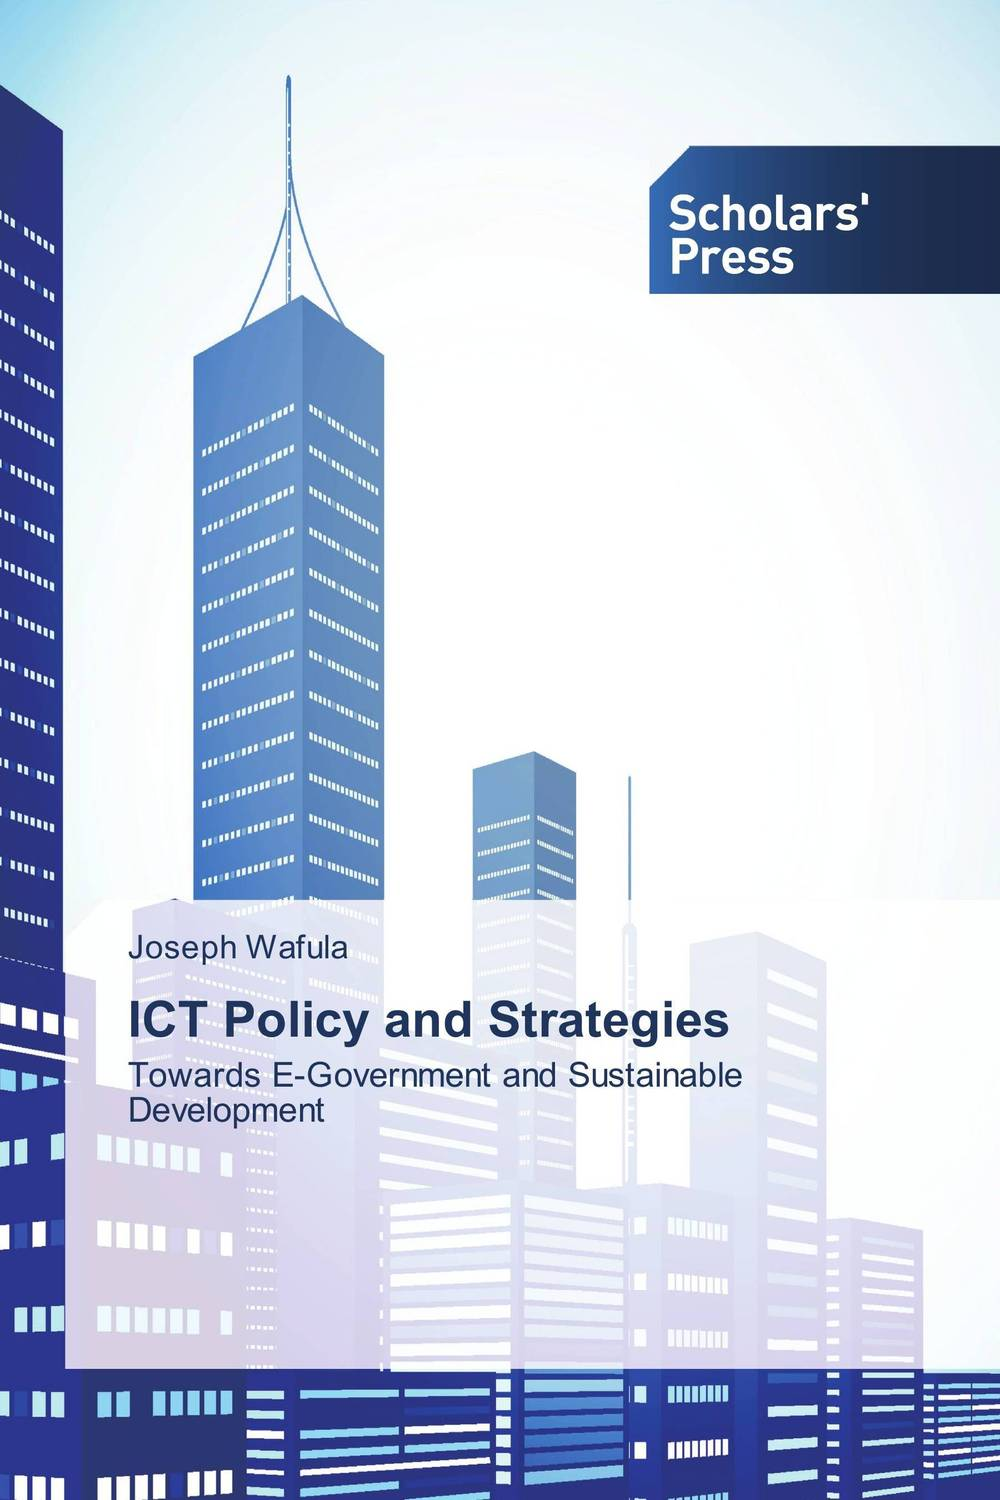 ICT Policy and Strategies point systems migration policy and international students flow